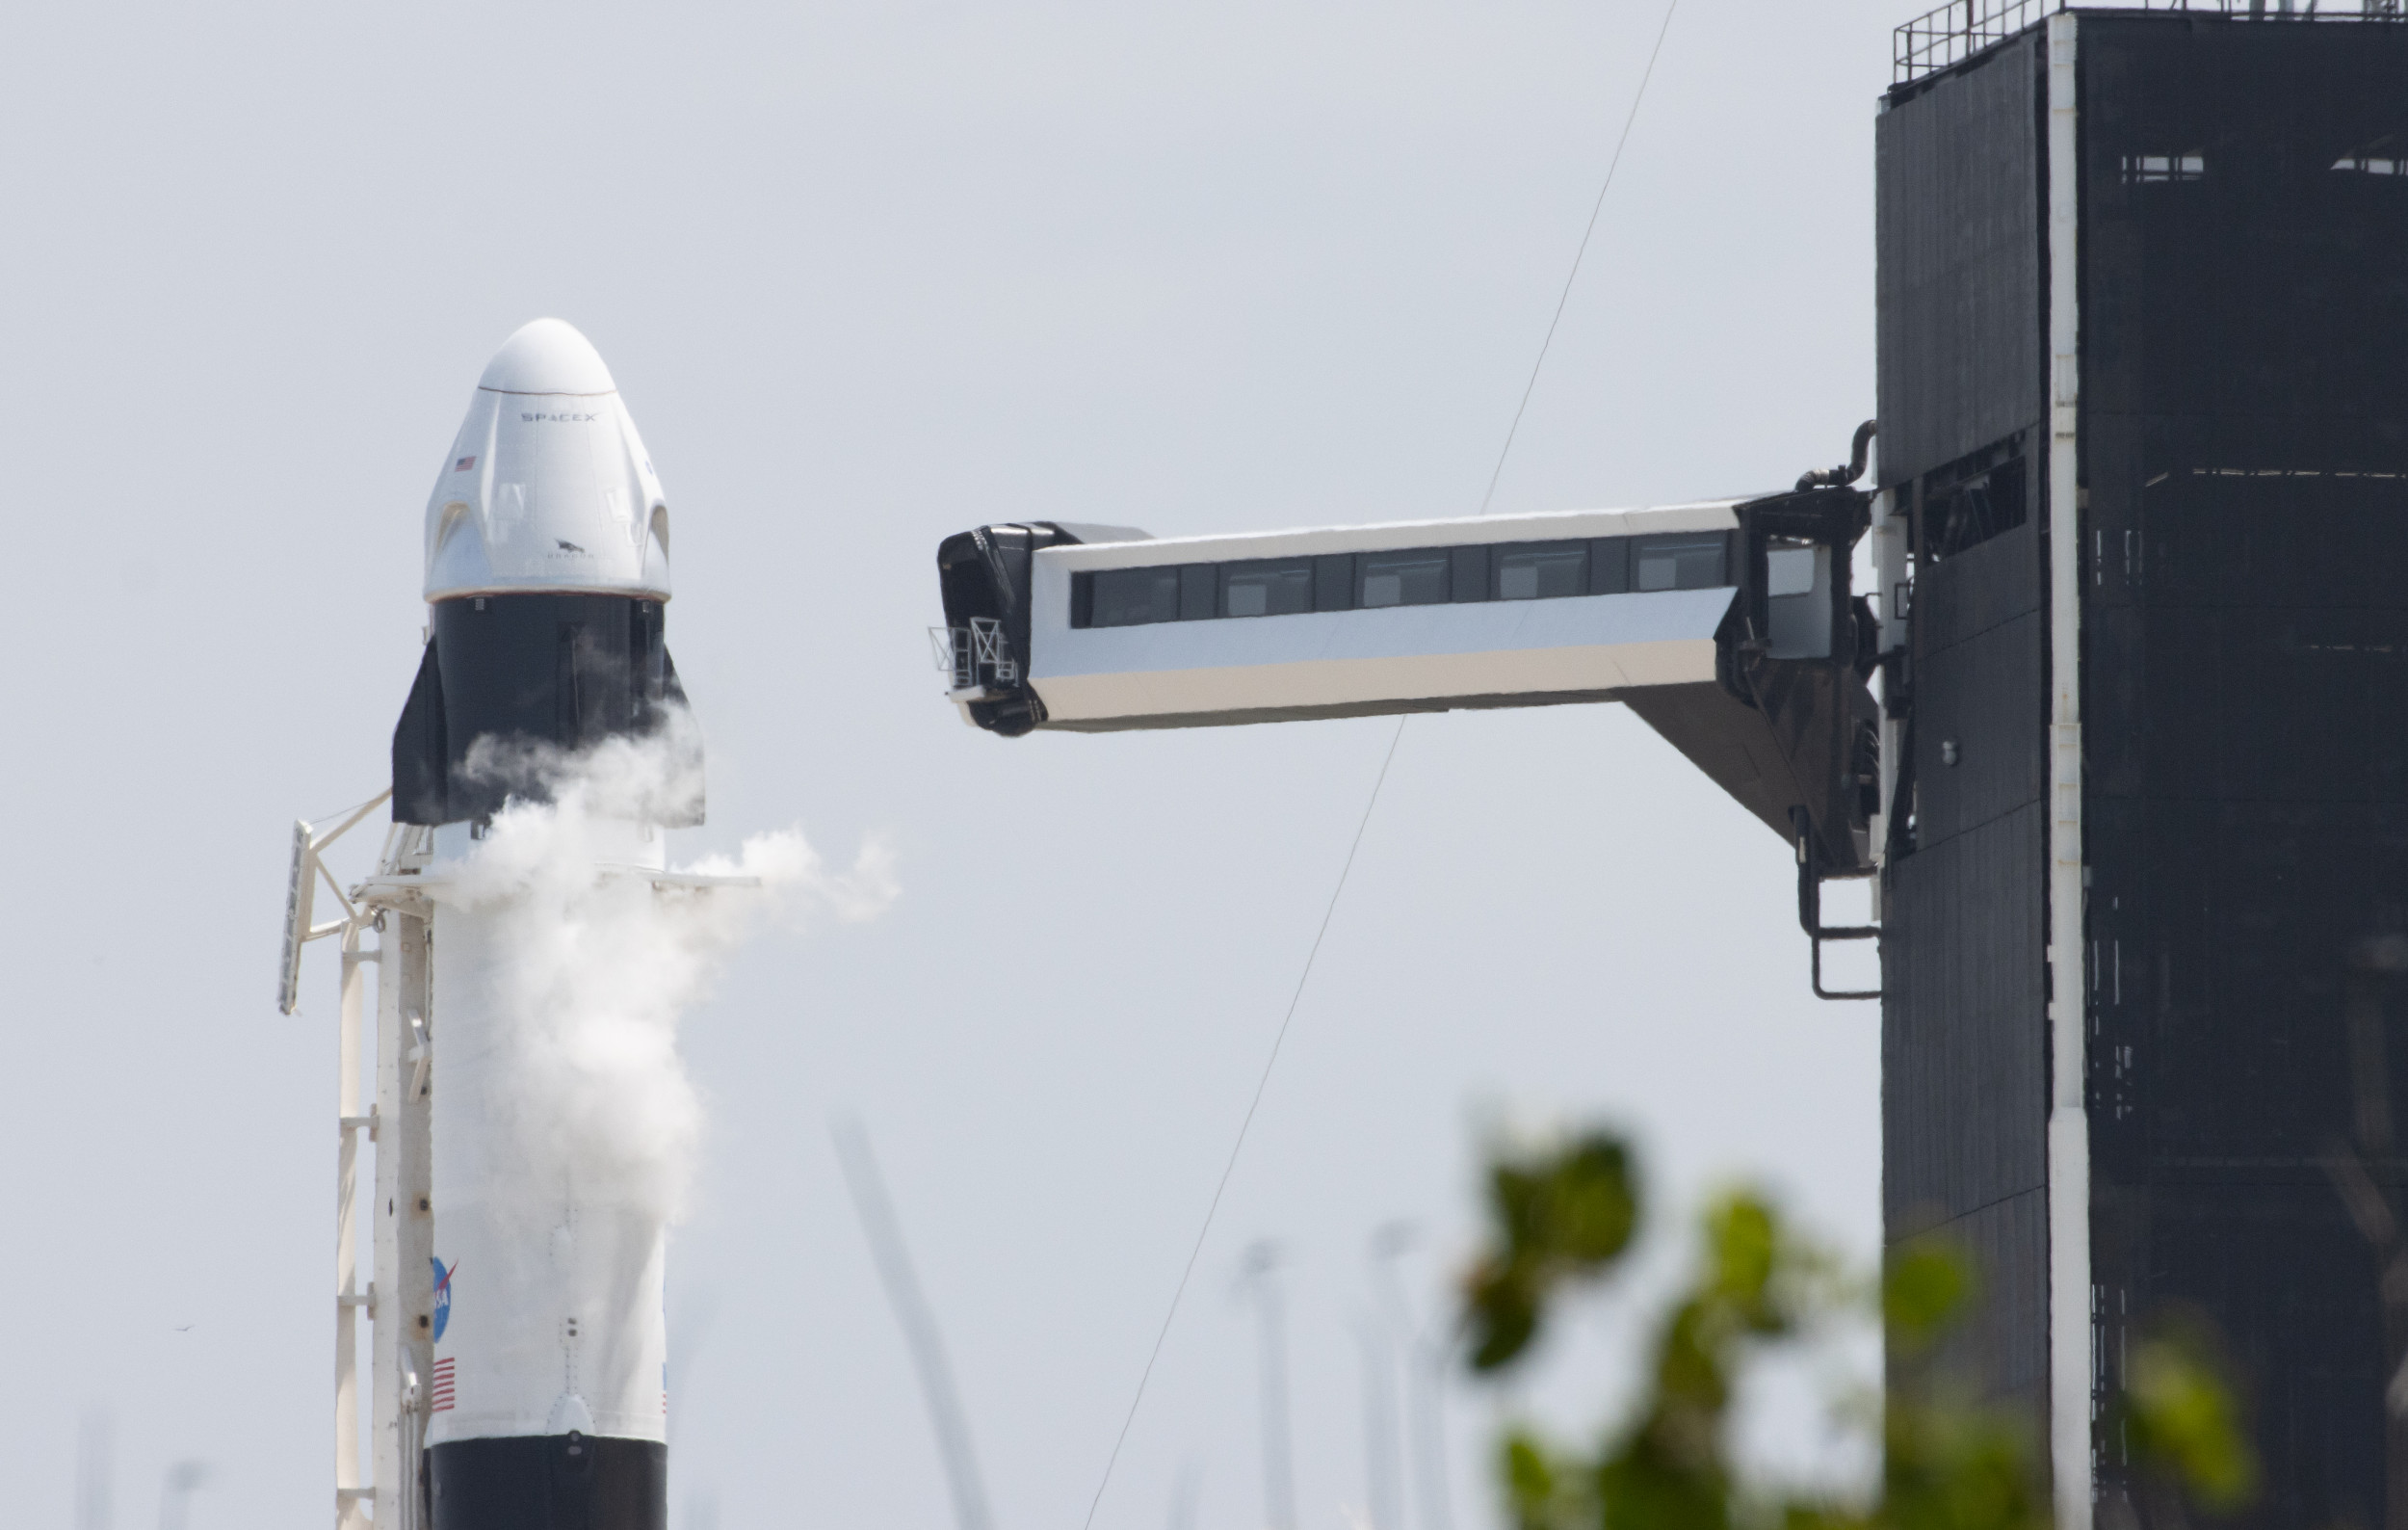 When Does SpaceX Launch NASA Astronauts to ISS?  How to Watch Crew-2 Mission Live Stream